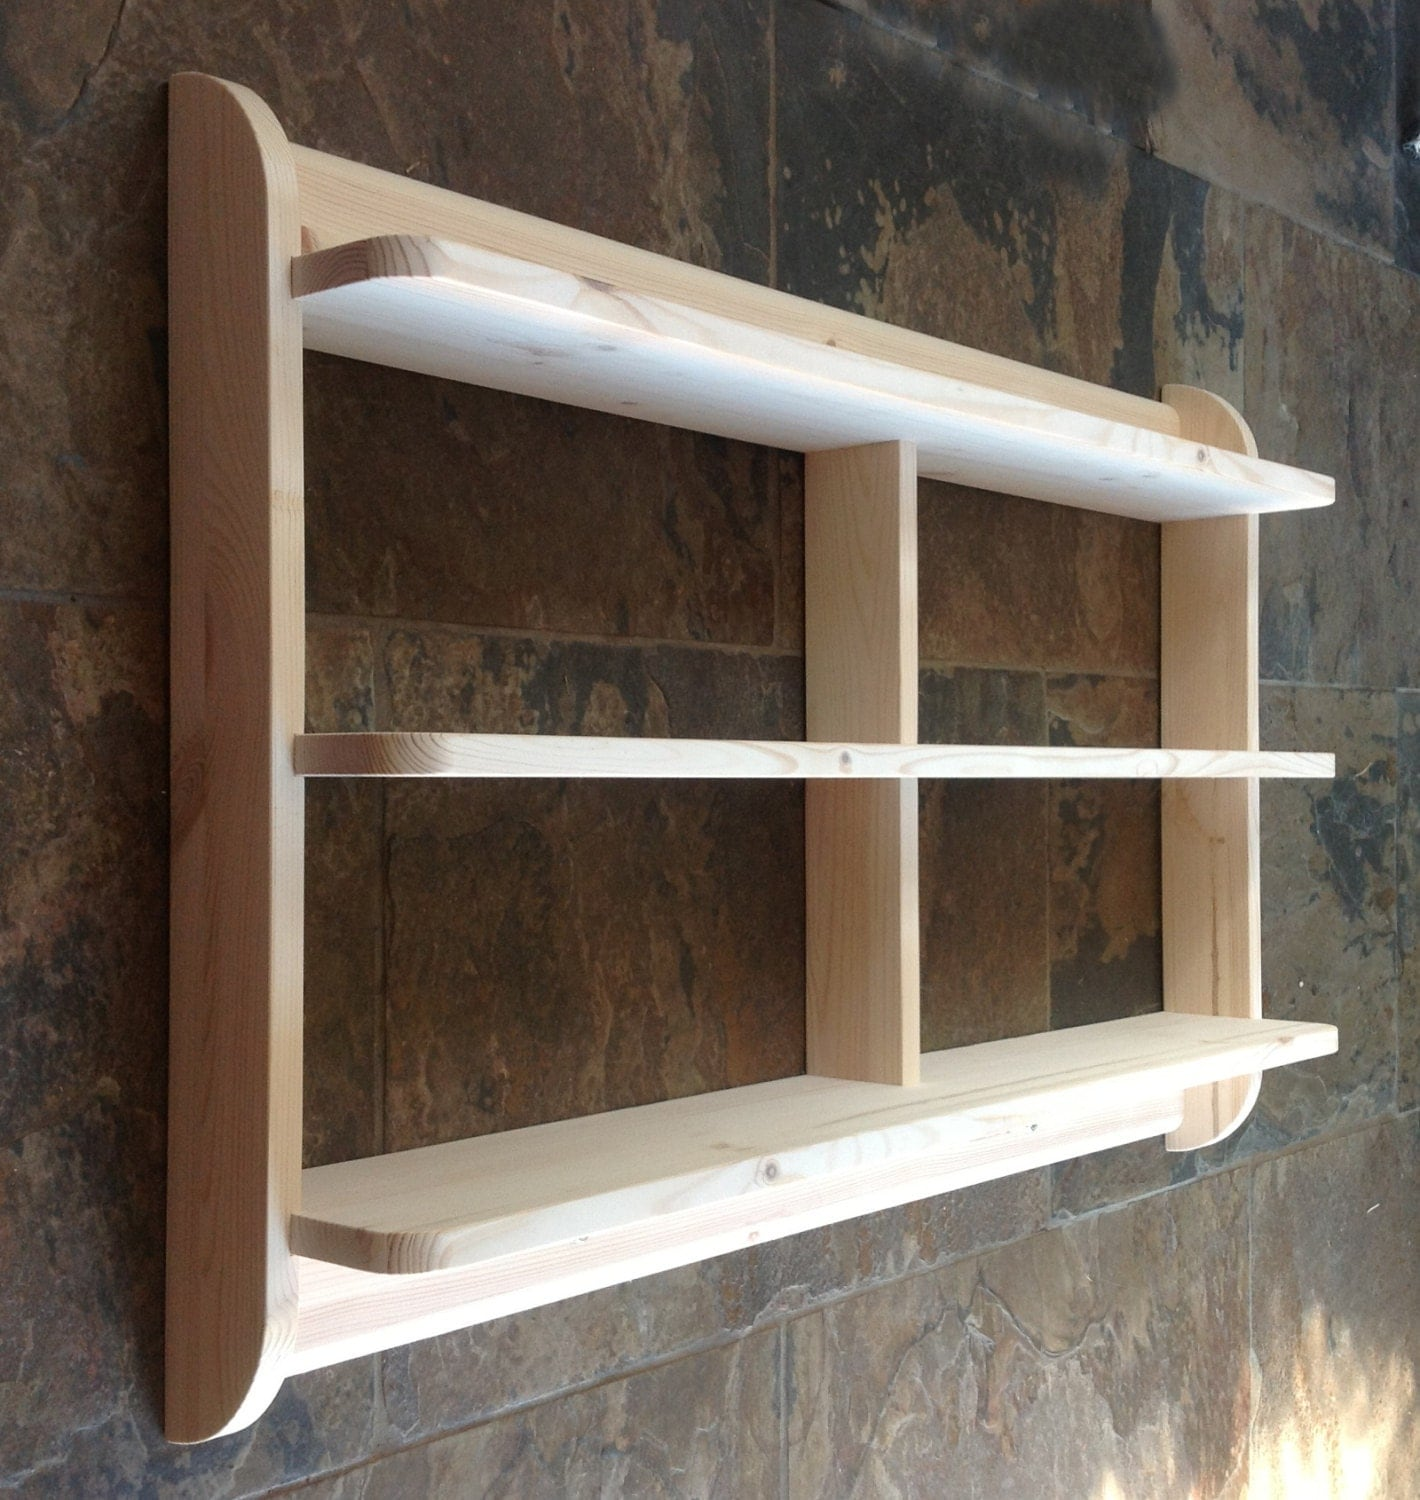 zoom - Wall Mounted Kitchen Shelf